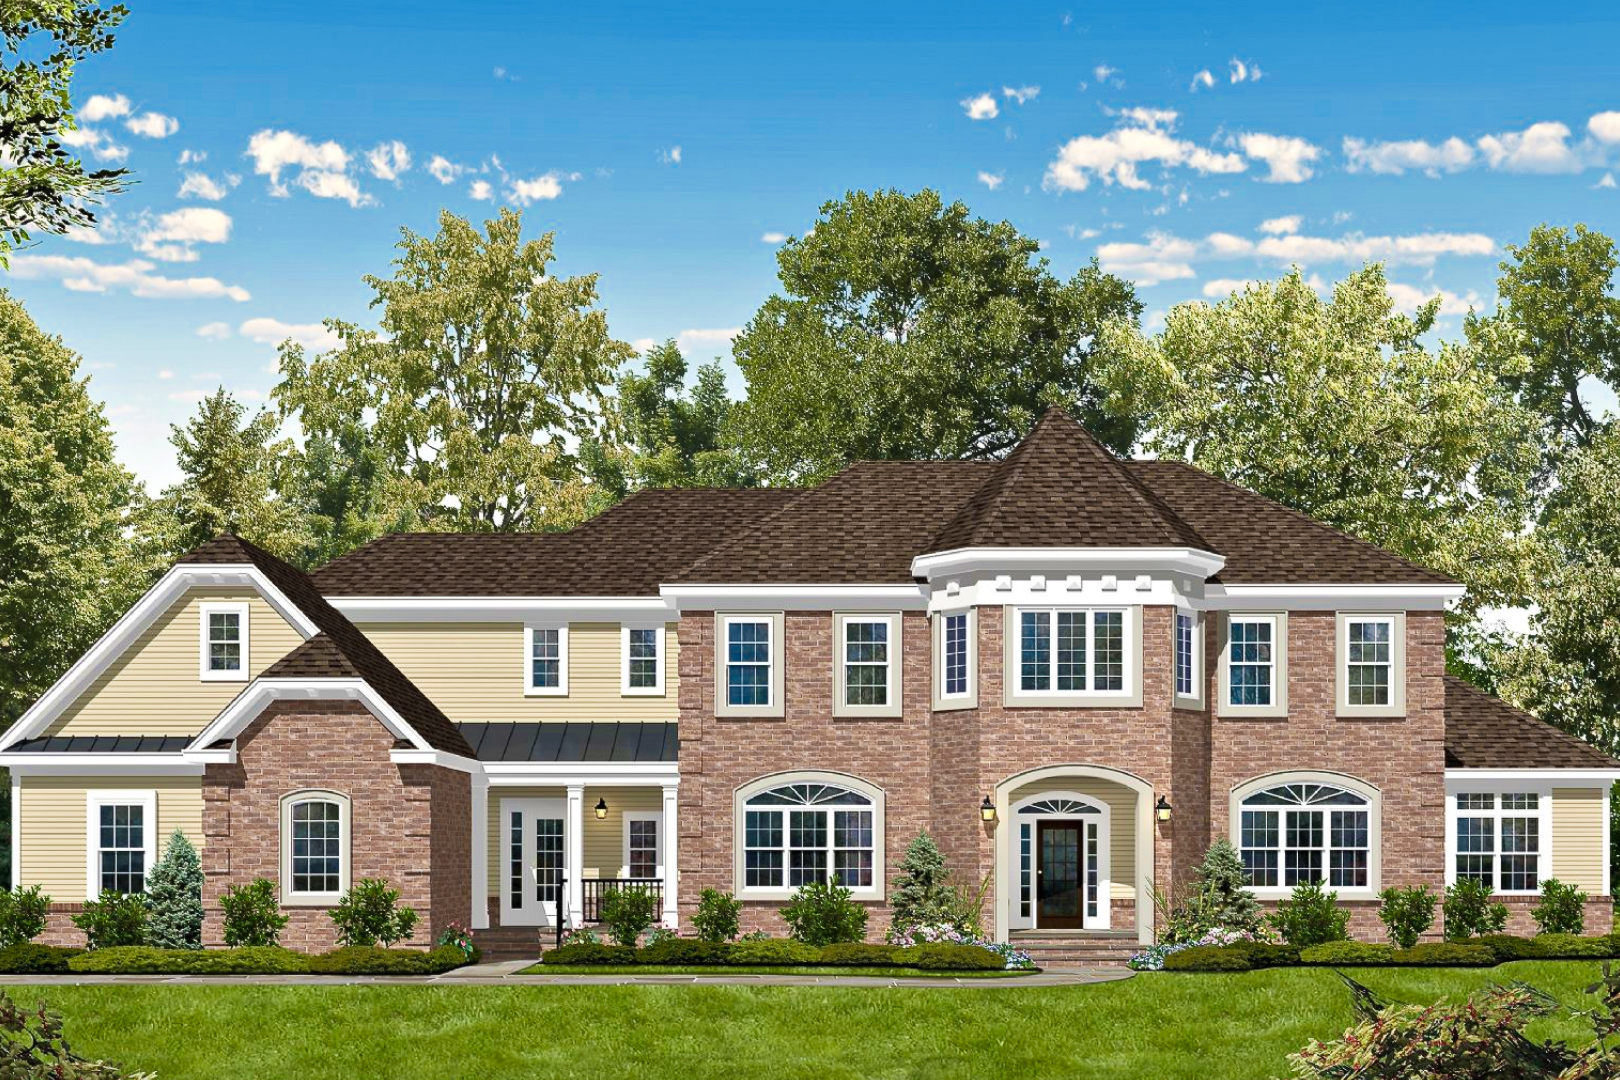 ESTATES AT HOLMDEL - LOCATION: HOLMDELL, NJA new community of 19 single-family homes.